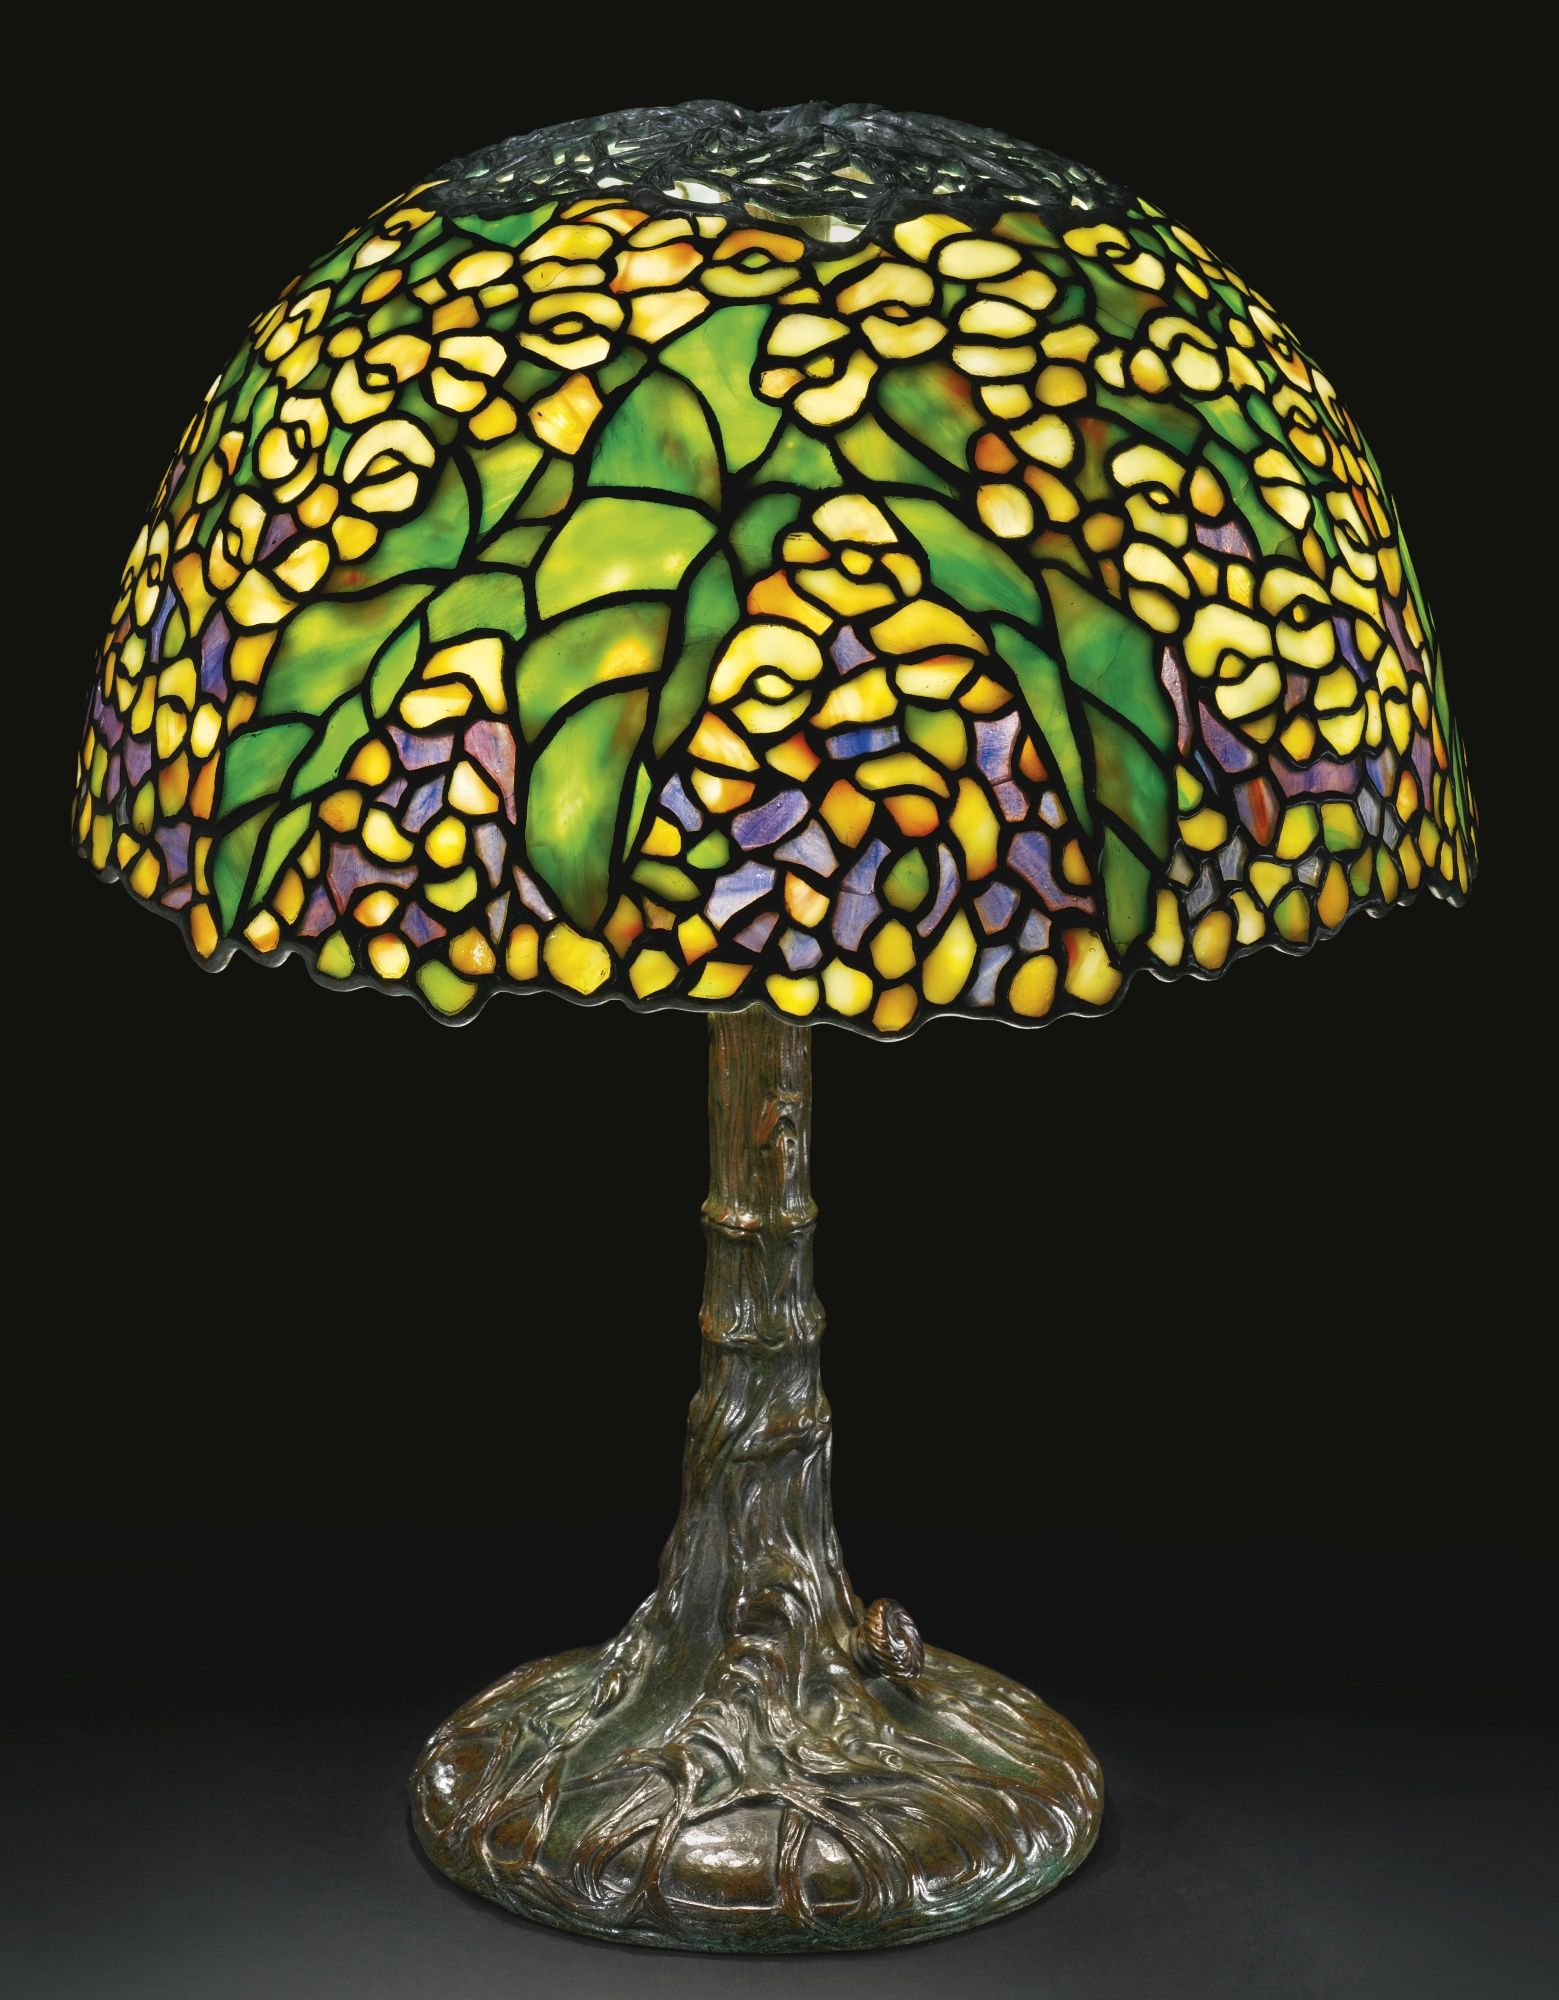 Tiffany Studios: PONY BEGONIA TABLE LAMP with a small